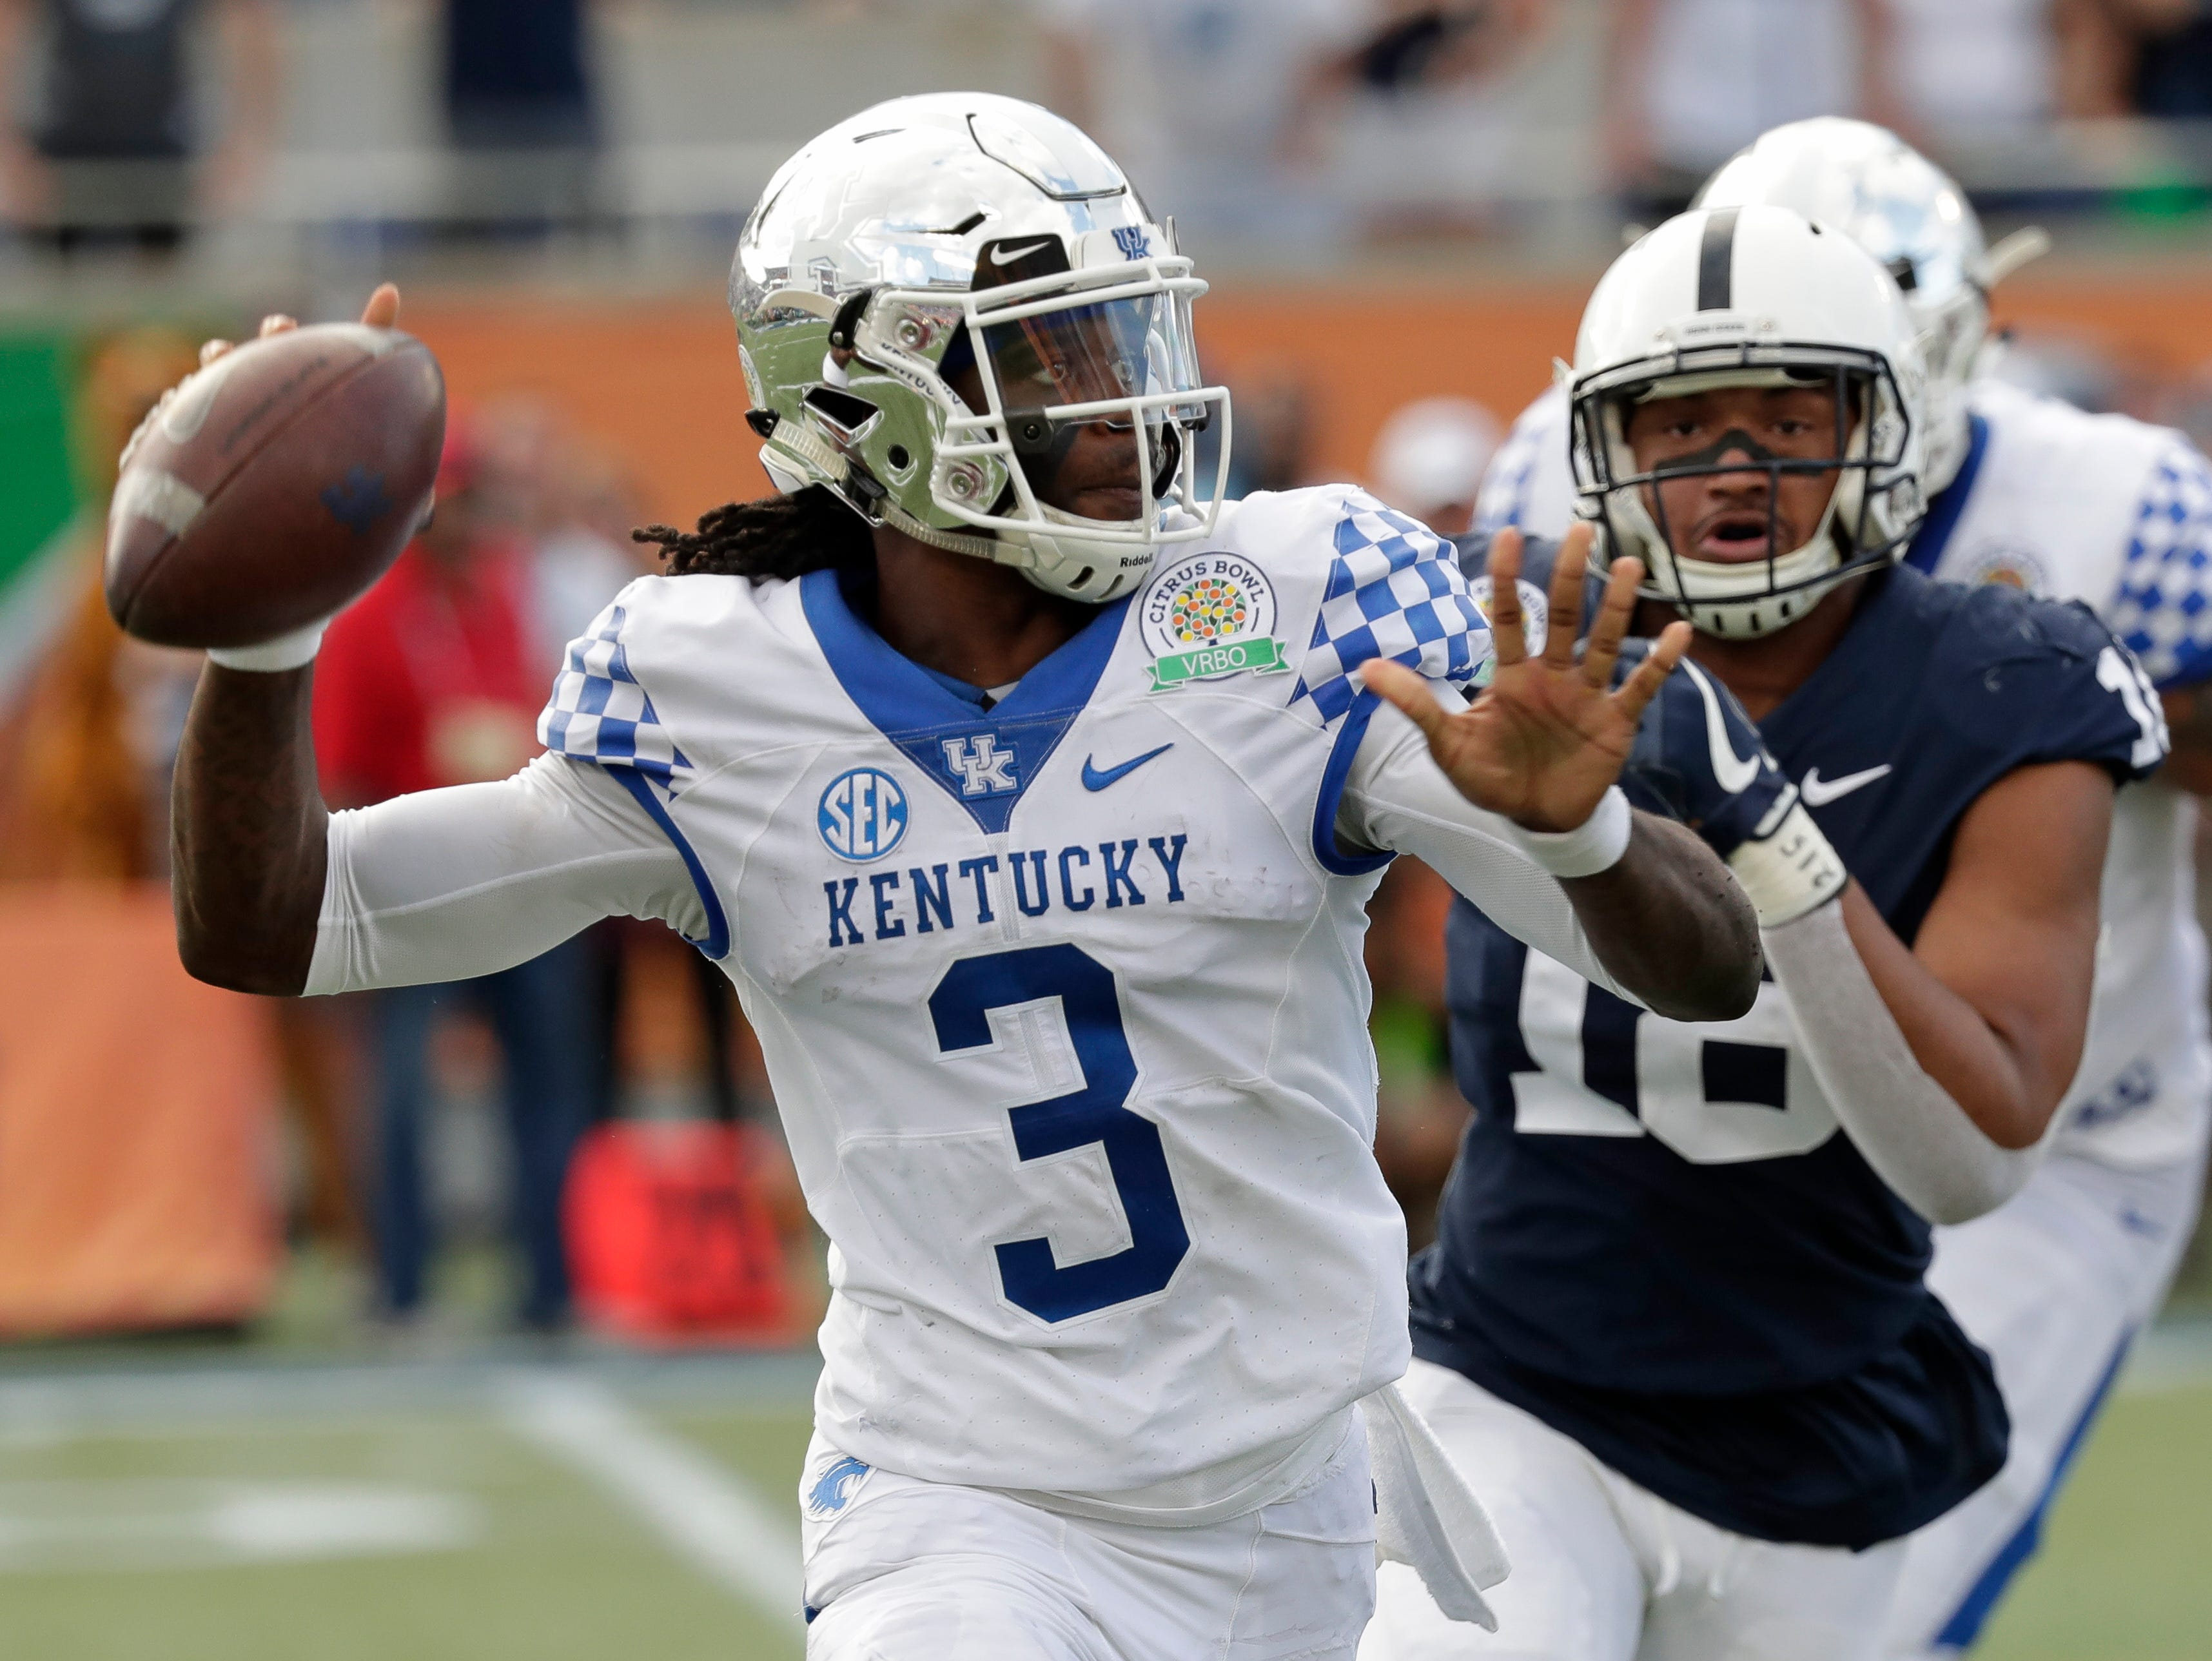 Kentucky quarterback Terry Wilson (3) looks for a receiver as he is pressured by Penn State defensive end Shaka Toney during the second half of the Citrus Bowl NCAA college football game, Tuesday, Jan. 1, 2019, in Orlando, Fla. (AP Photo/John Raoux)